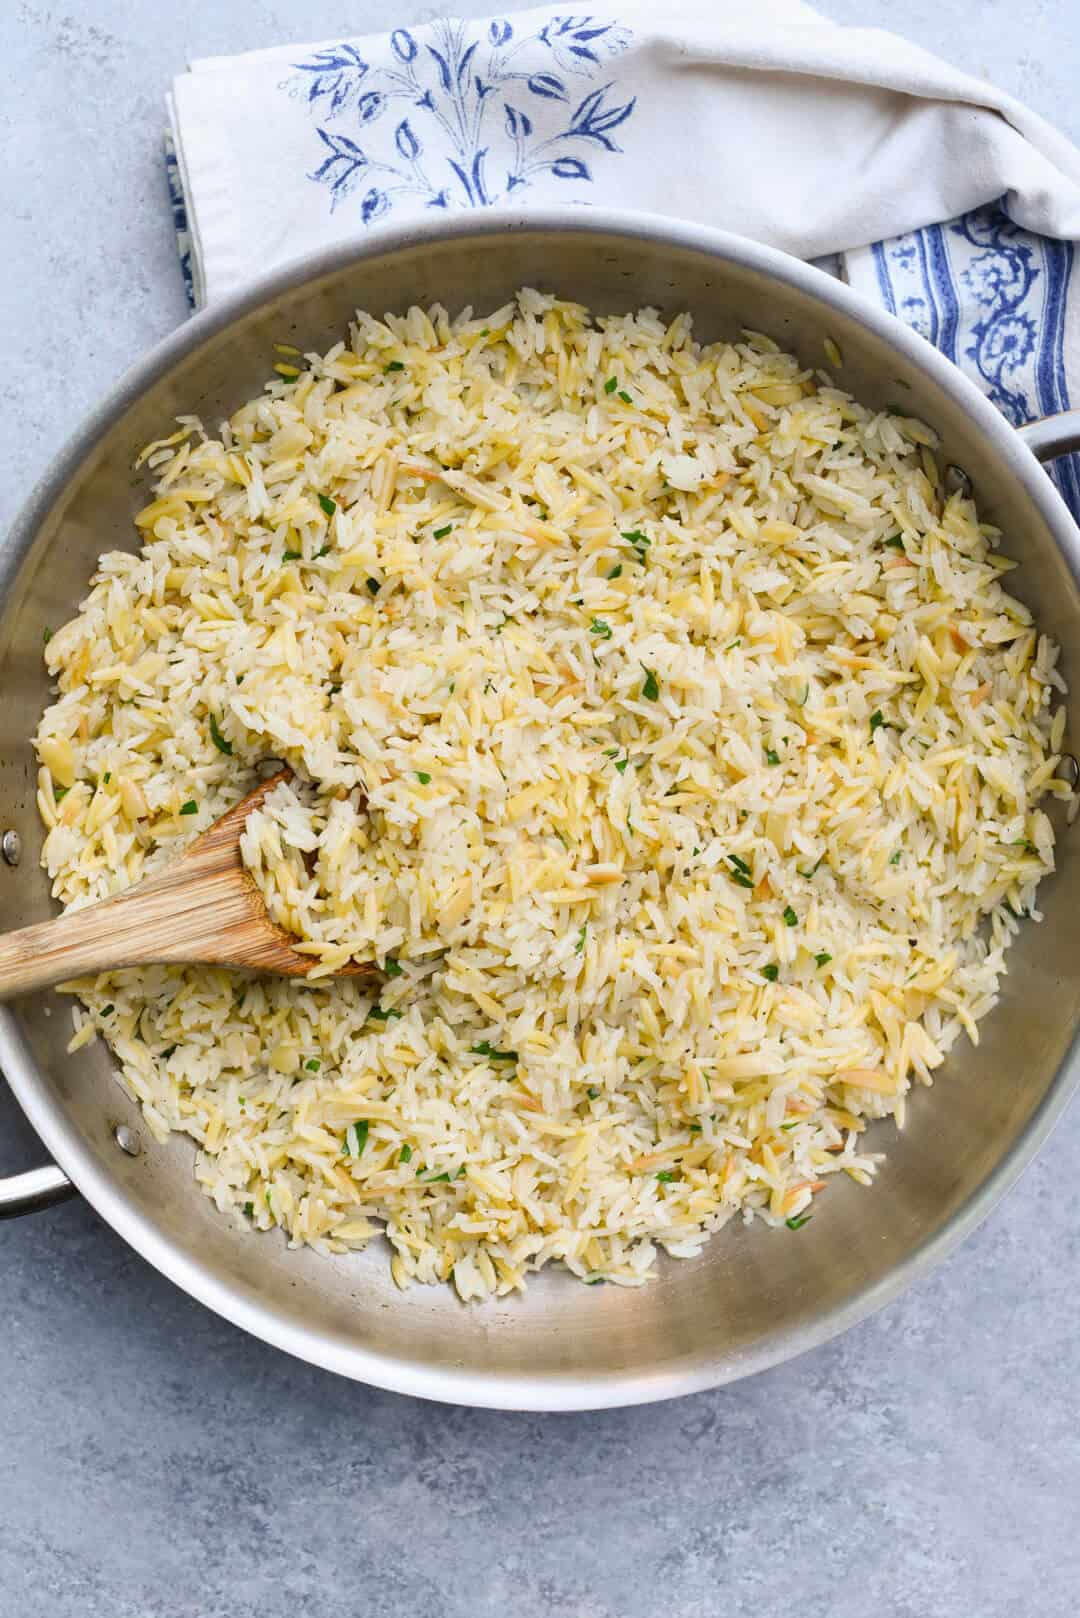 The pilaf in a stainless steel skillet with a wooden spoon.